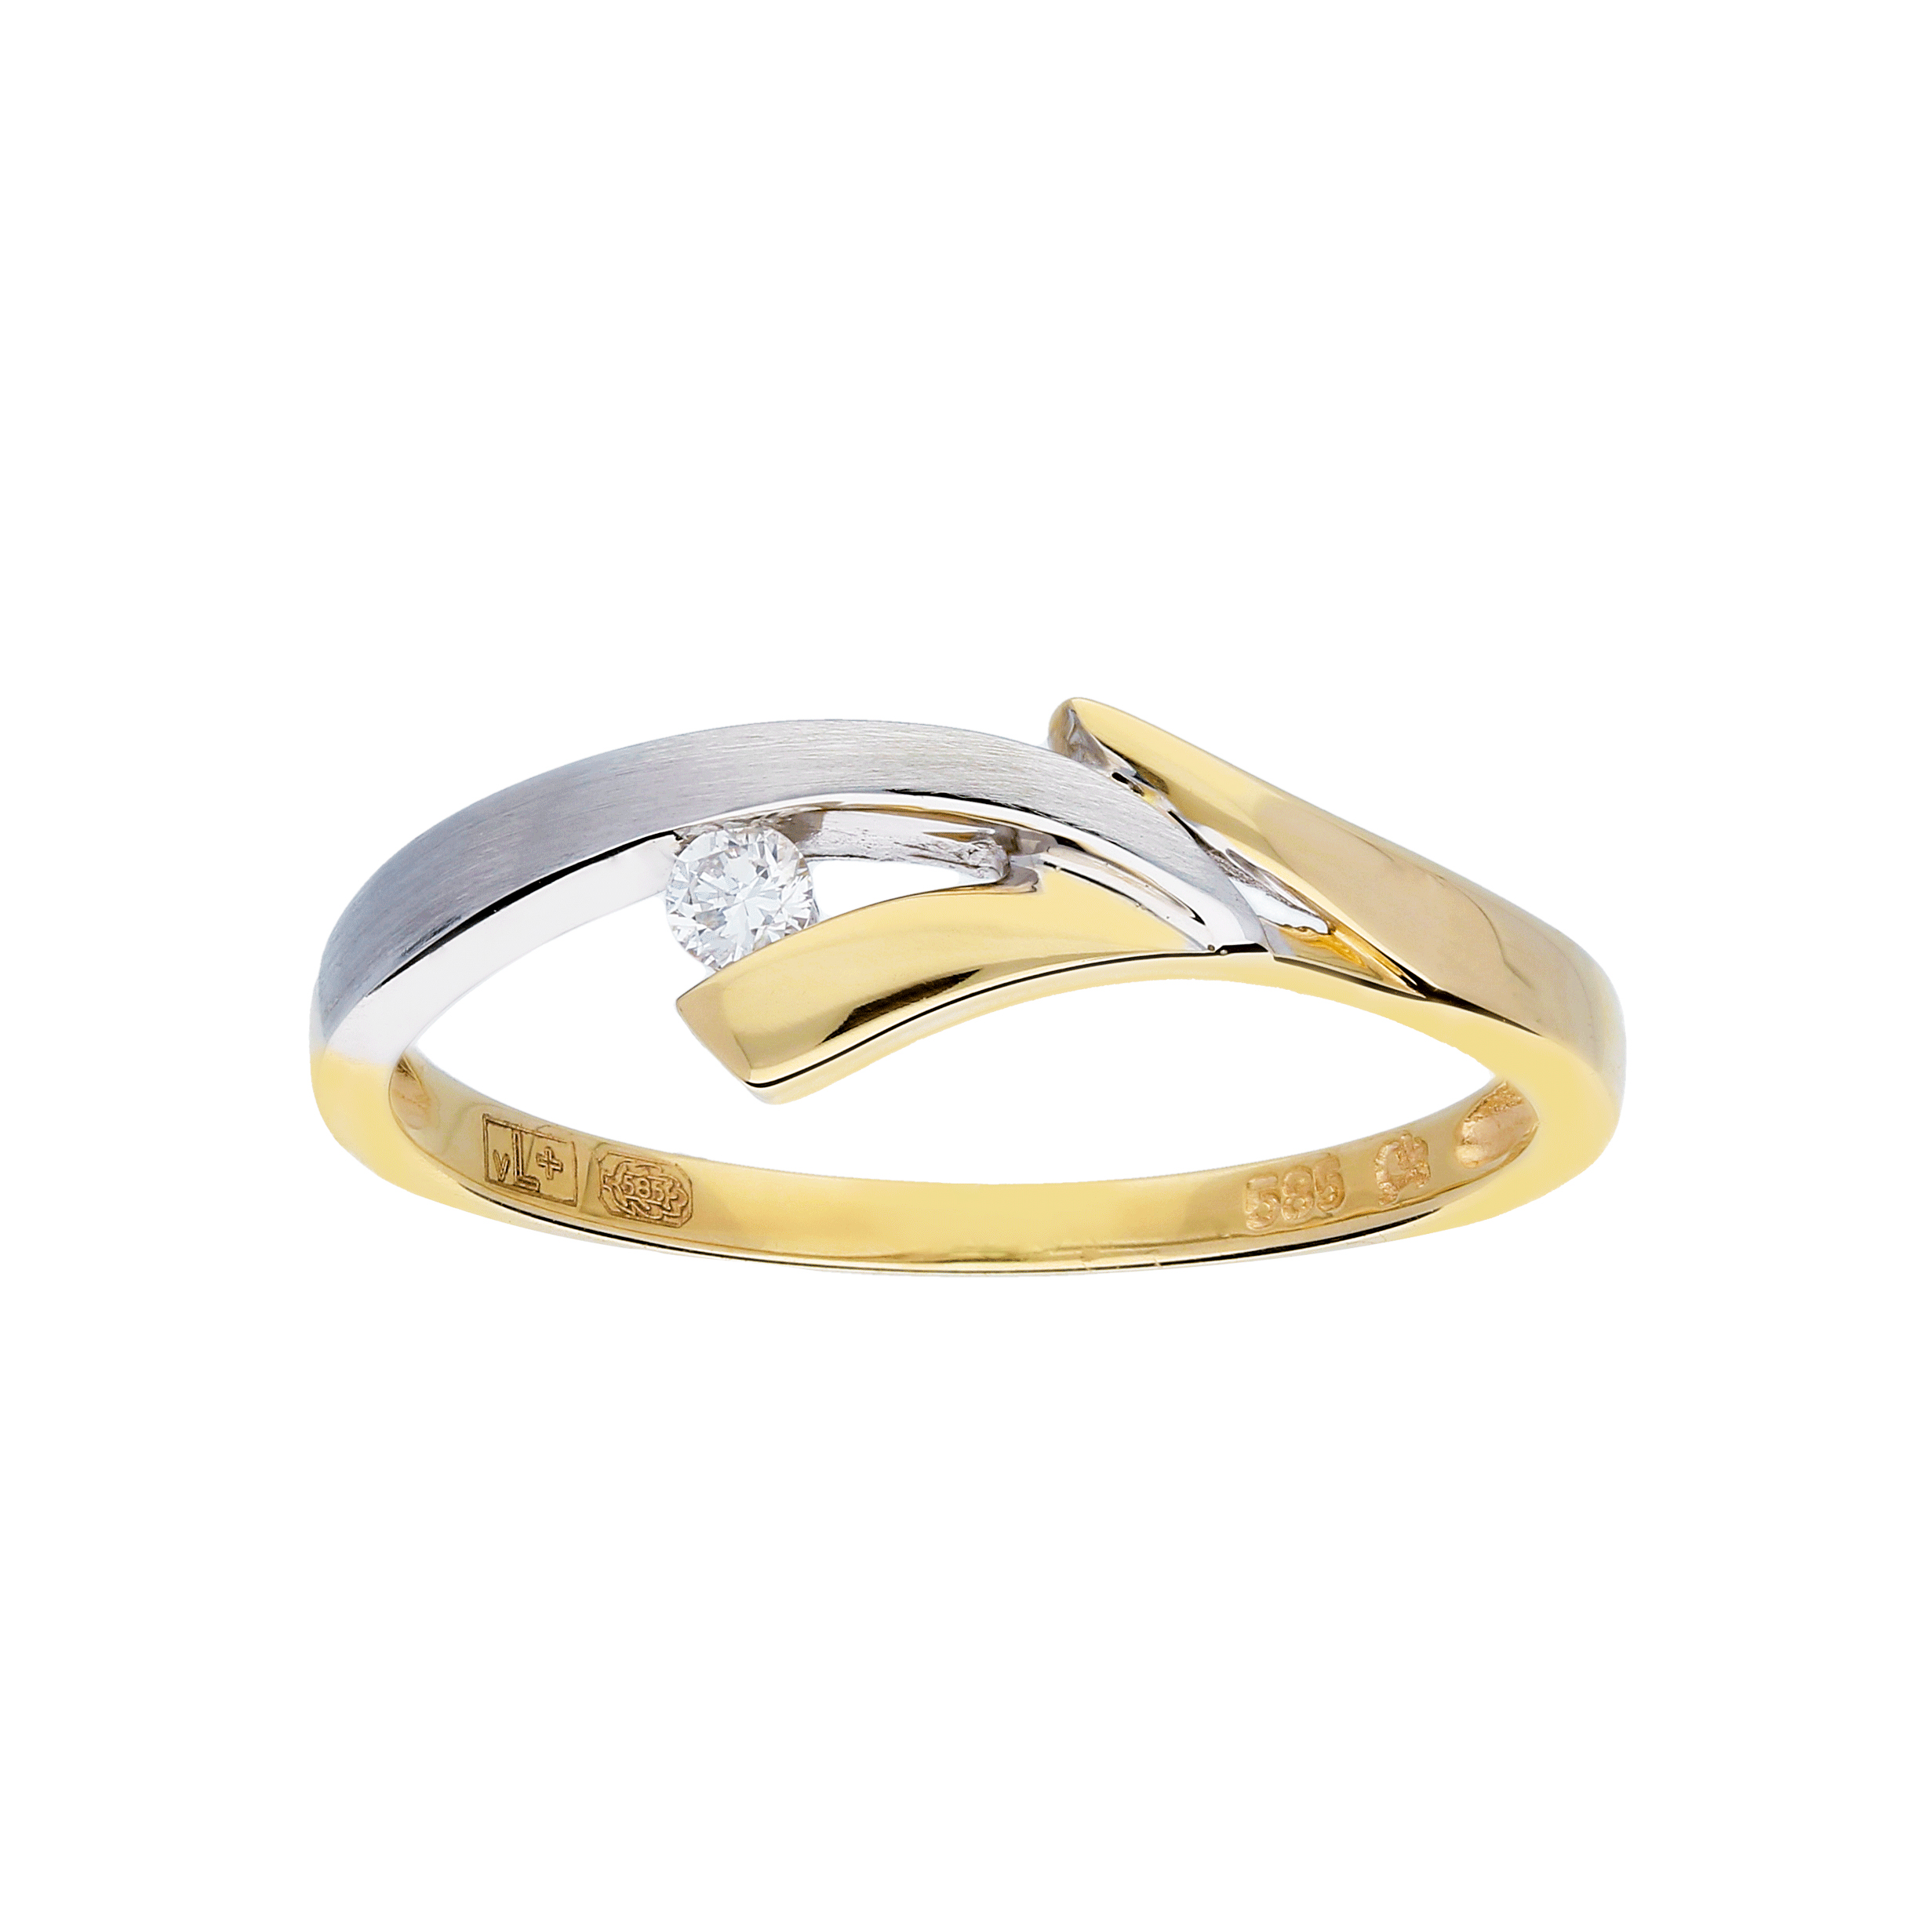 Glow Gouden Ring Bicolor Mat Glanzend Diamant 1 0.04ct G si 214.5251.54